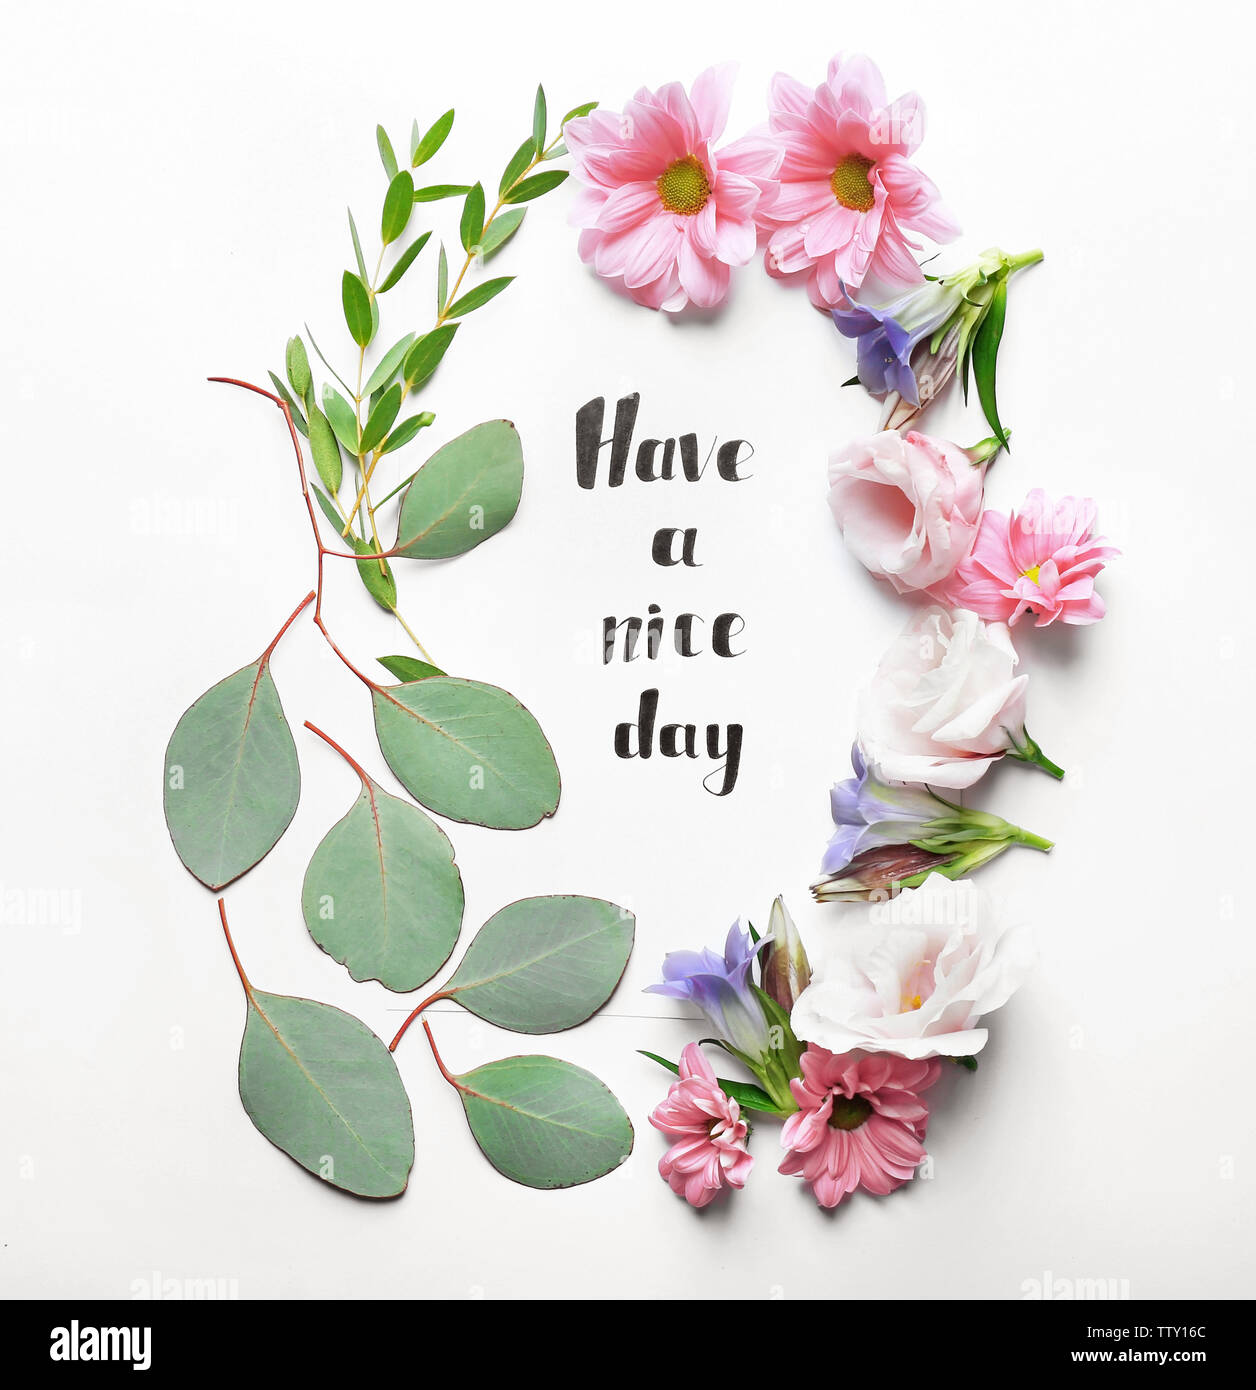 Inscription Have A Nice Day Written On Paper With Flowers And Leaves On White Background Stock Photo Alamy